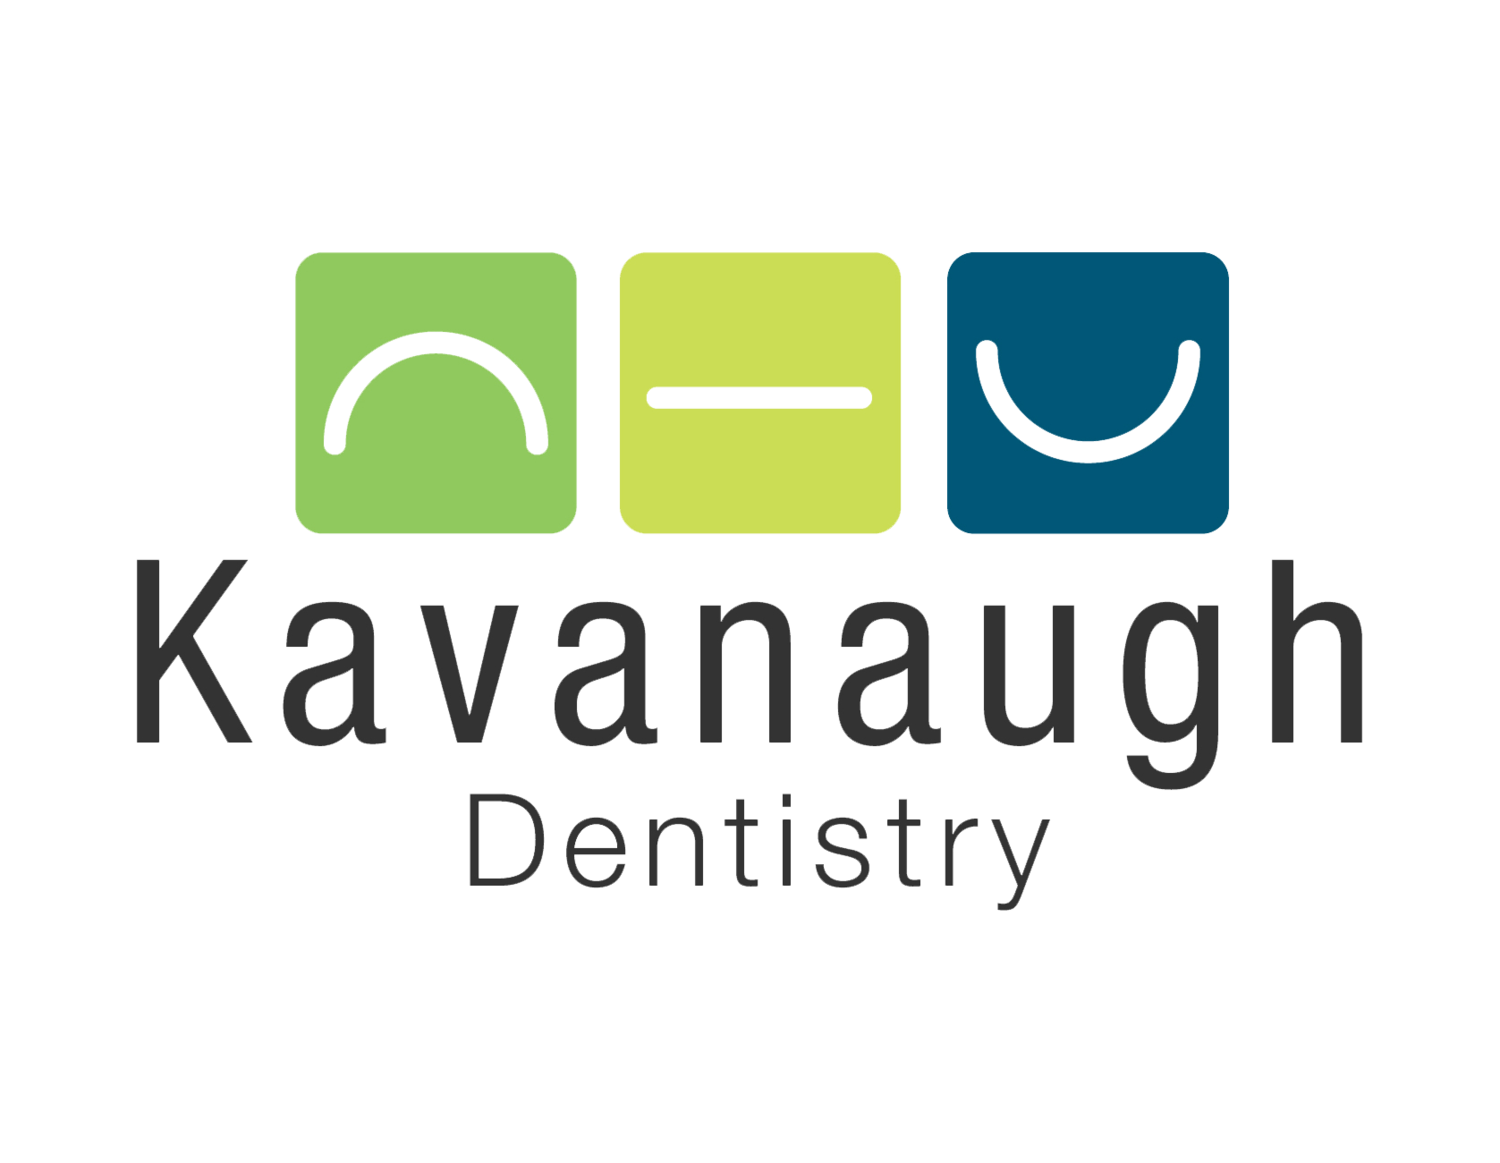 Kavanaugh Dentistry